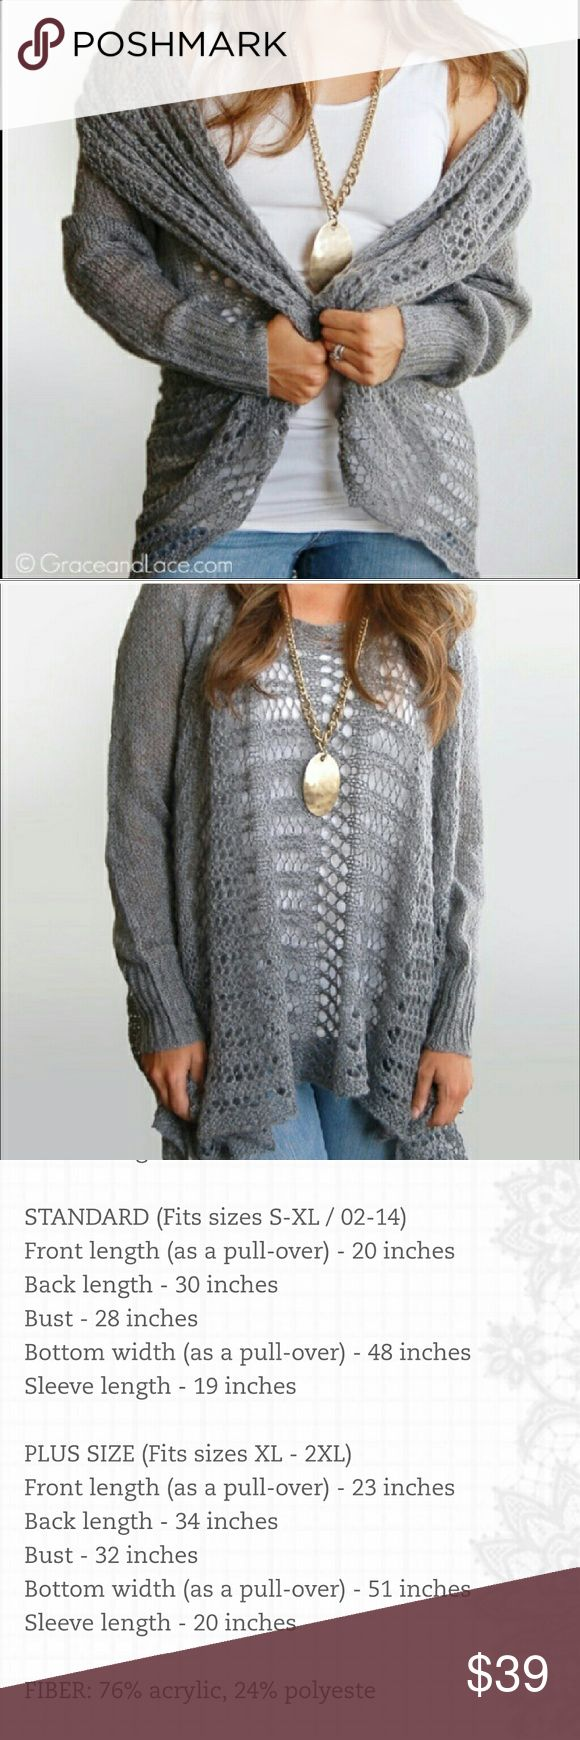 NEW Grace and Lace two fit knit cardigan Grey color. STANDARD size fits Small to XL Grace and Lace Sweaters